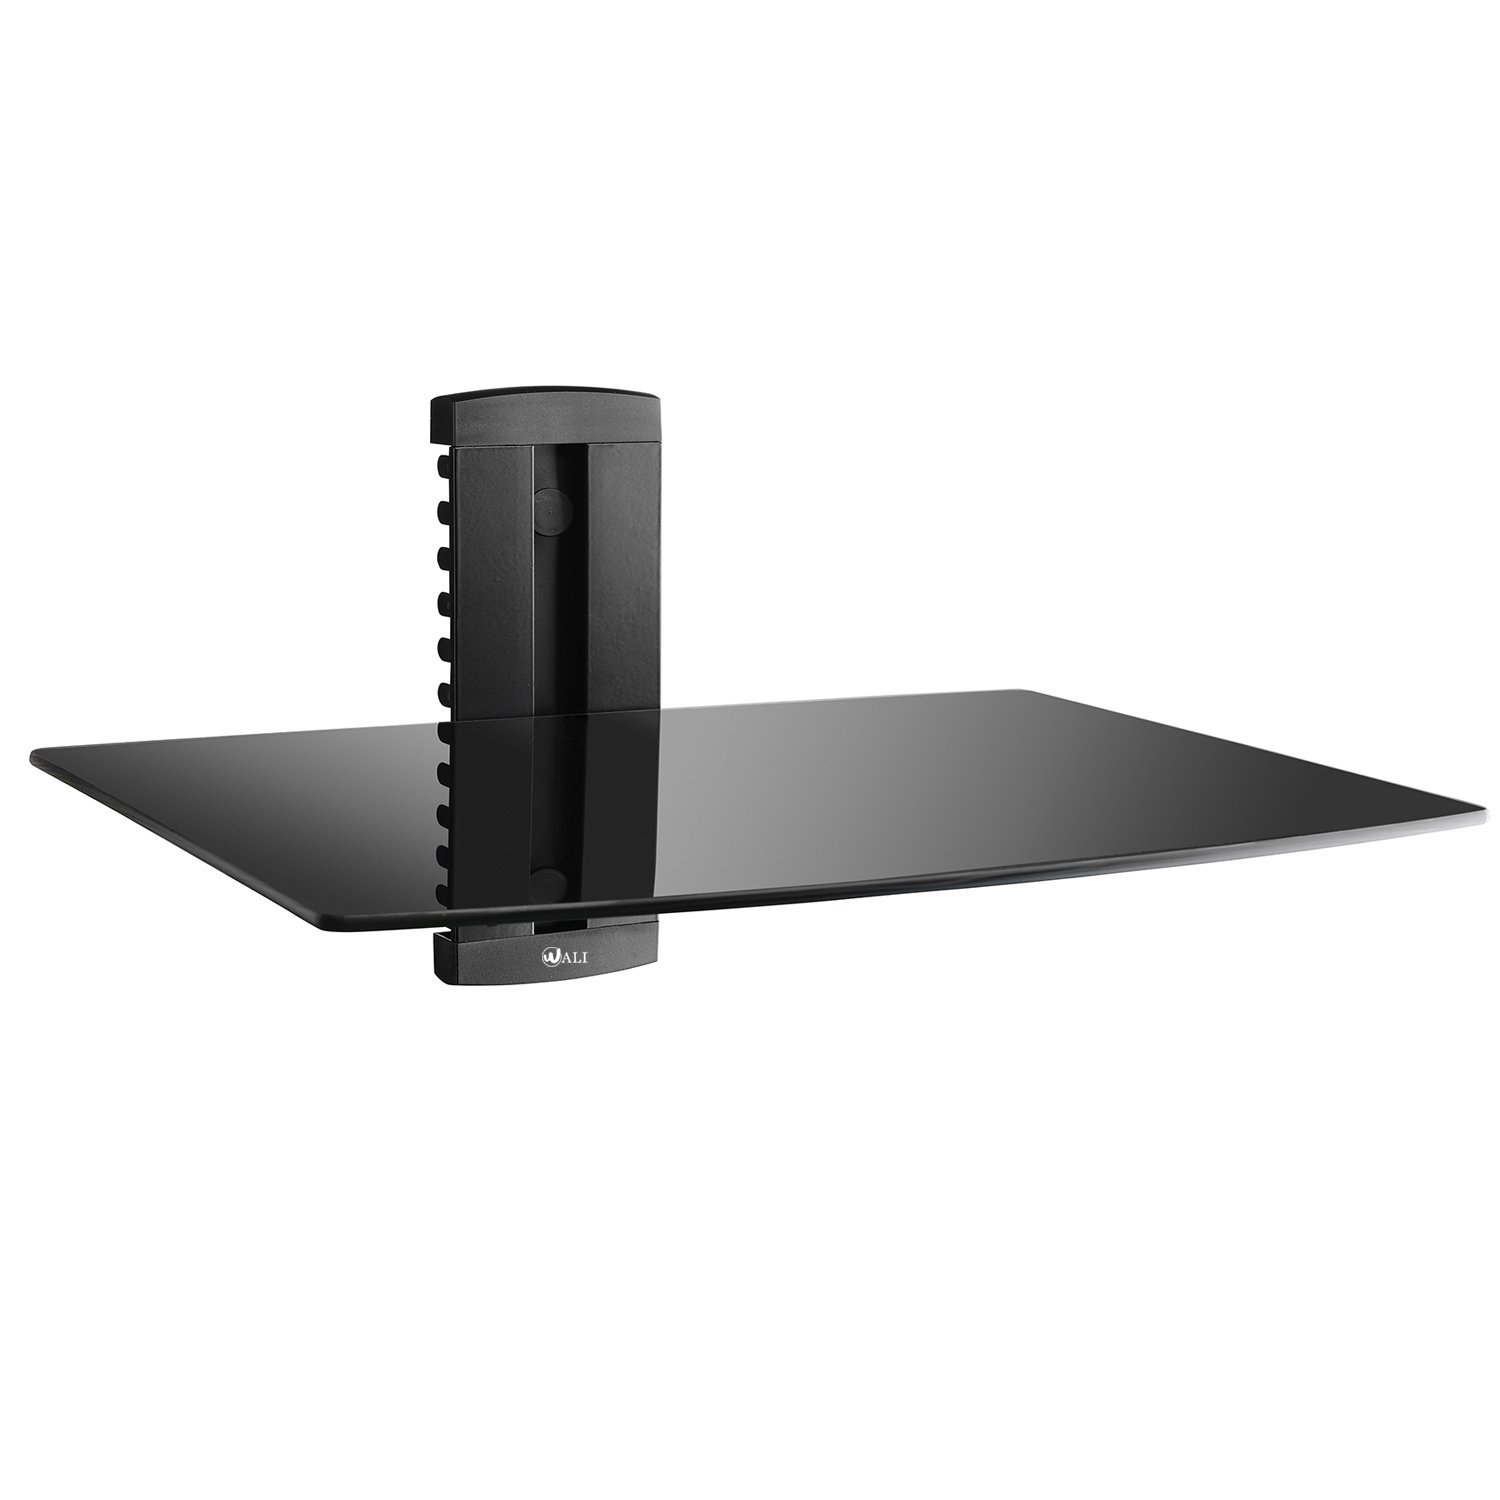 WALI WL-CS201-1 1X Black DVD DVR VCR Wall Mount Bracket Component Shelf